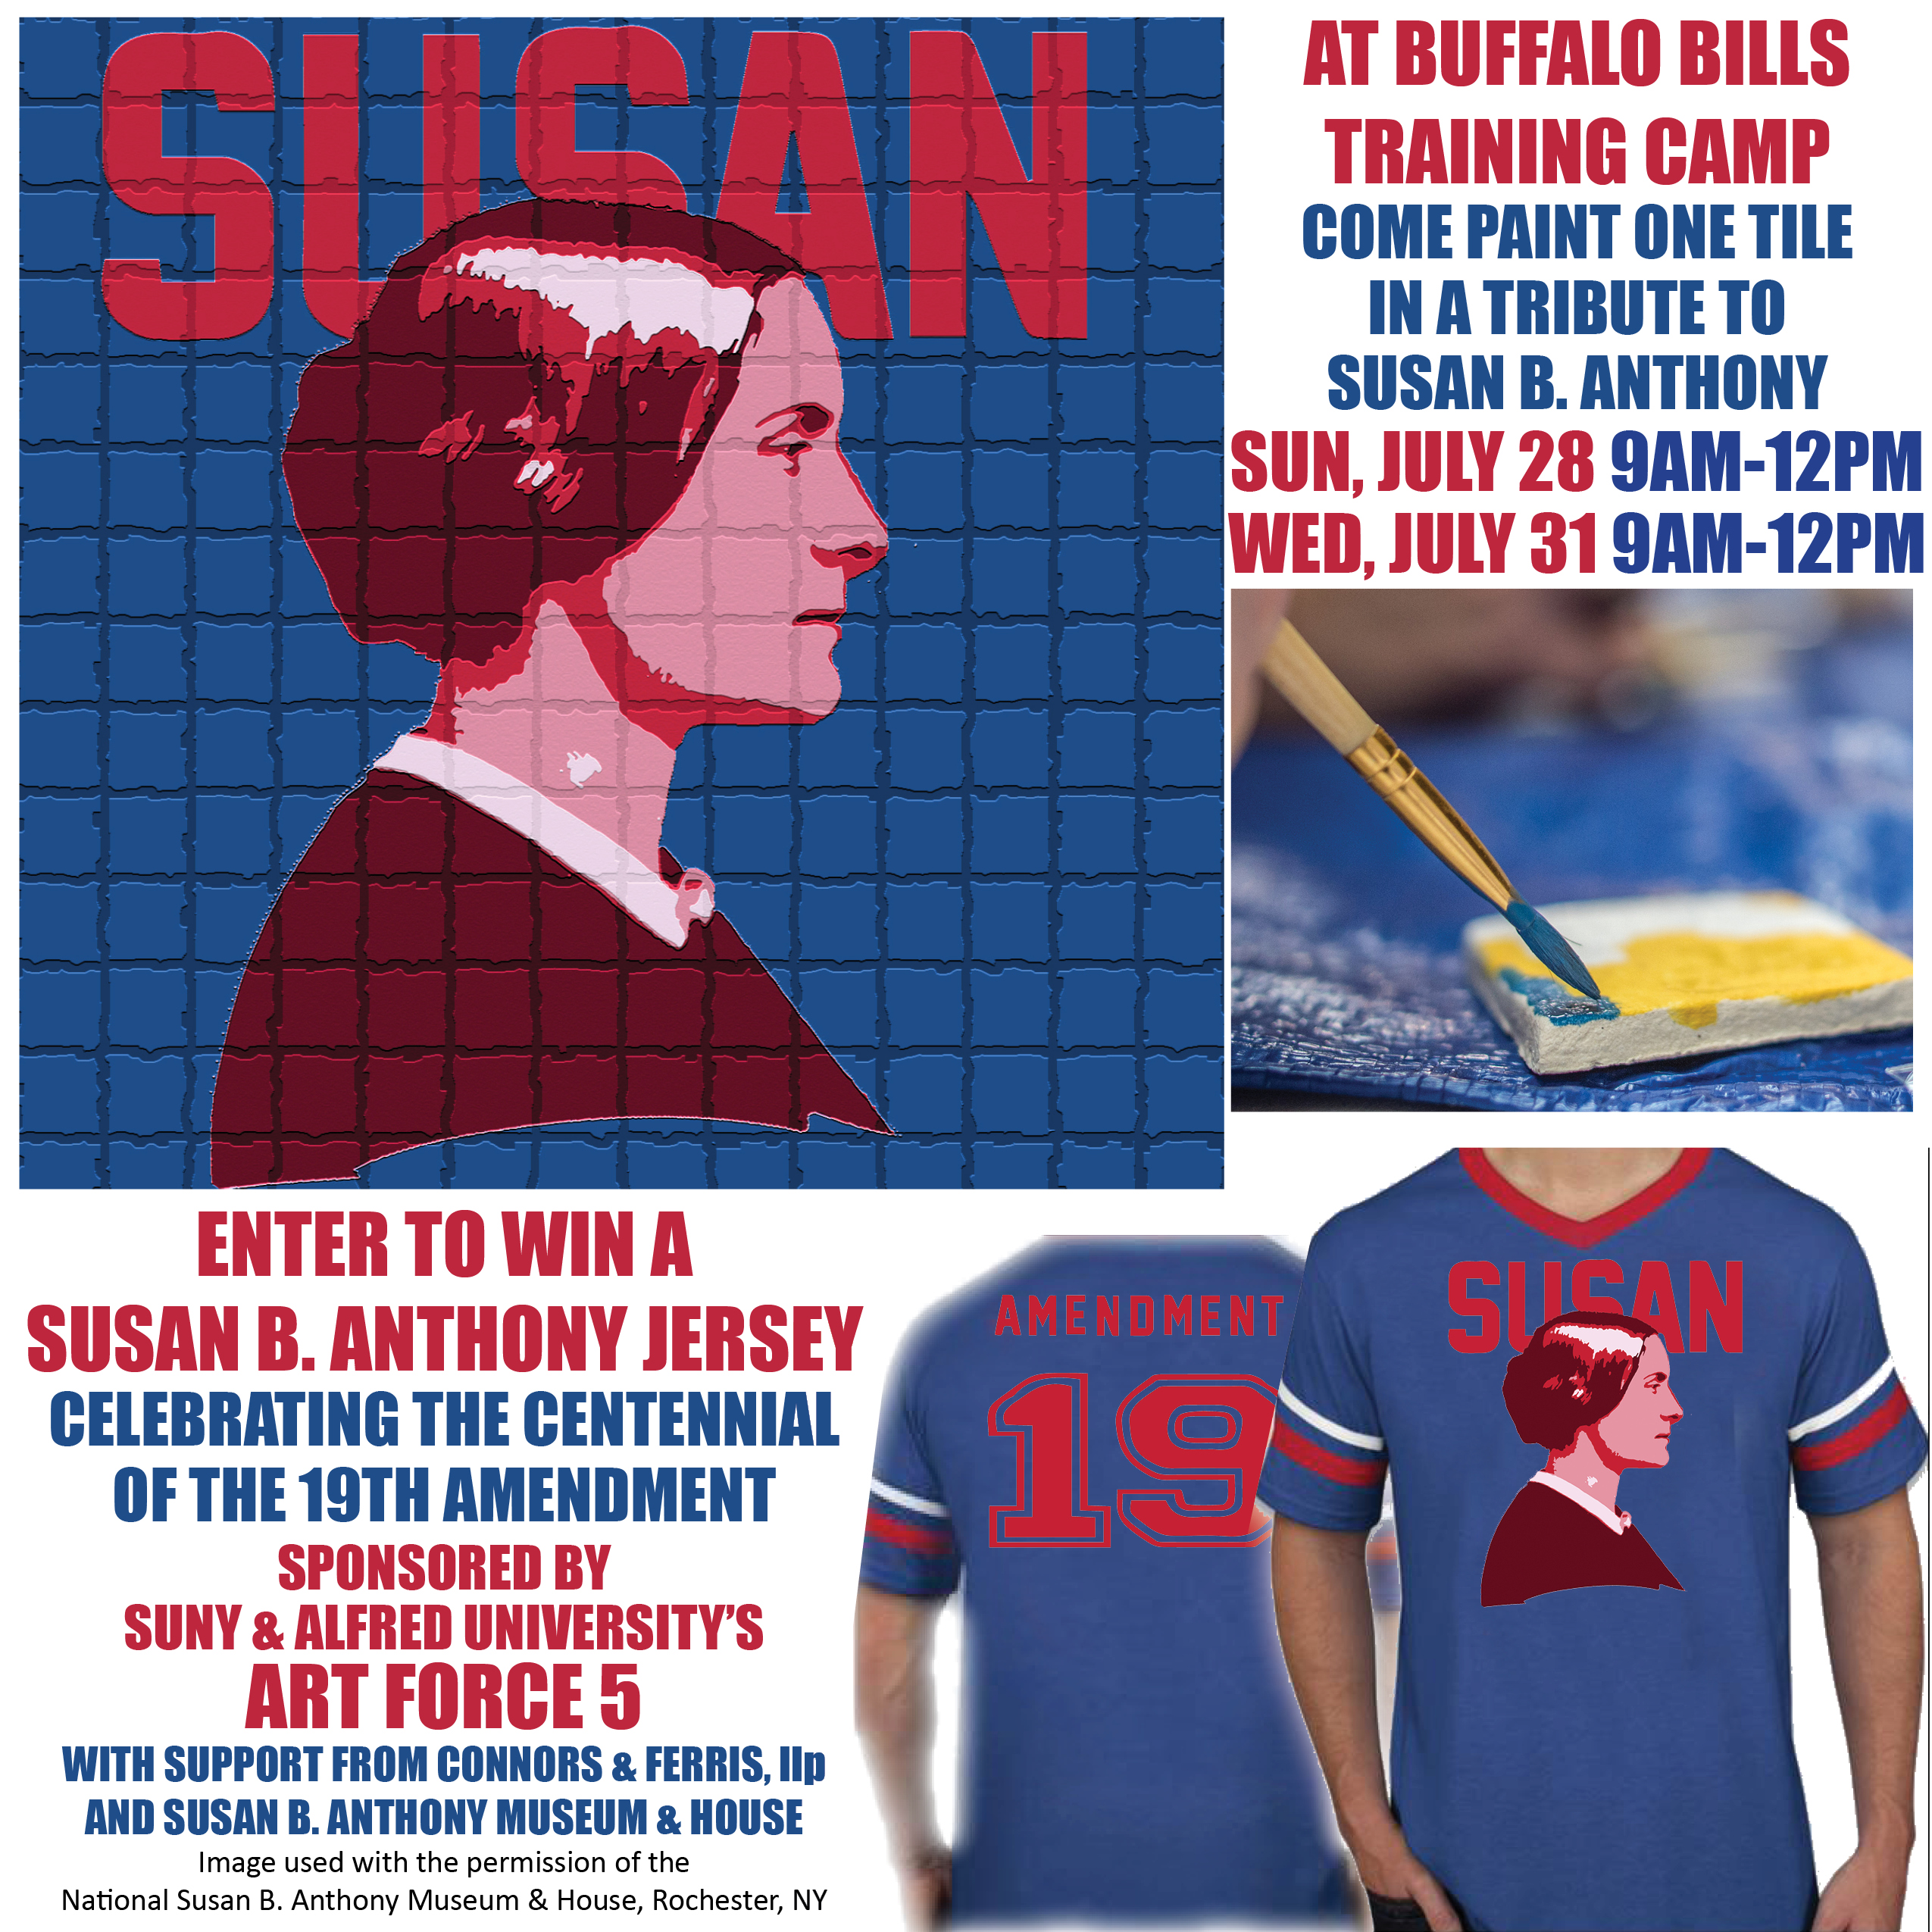 Susan B Anthony mosaic project at the Bills Training Camp with Art Force 5